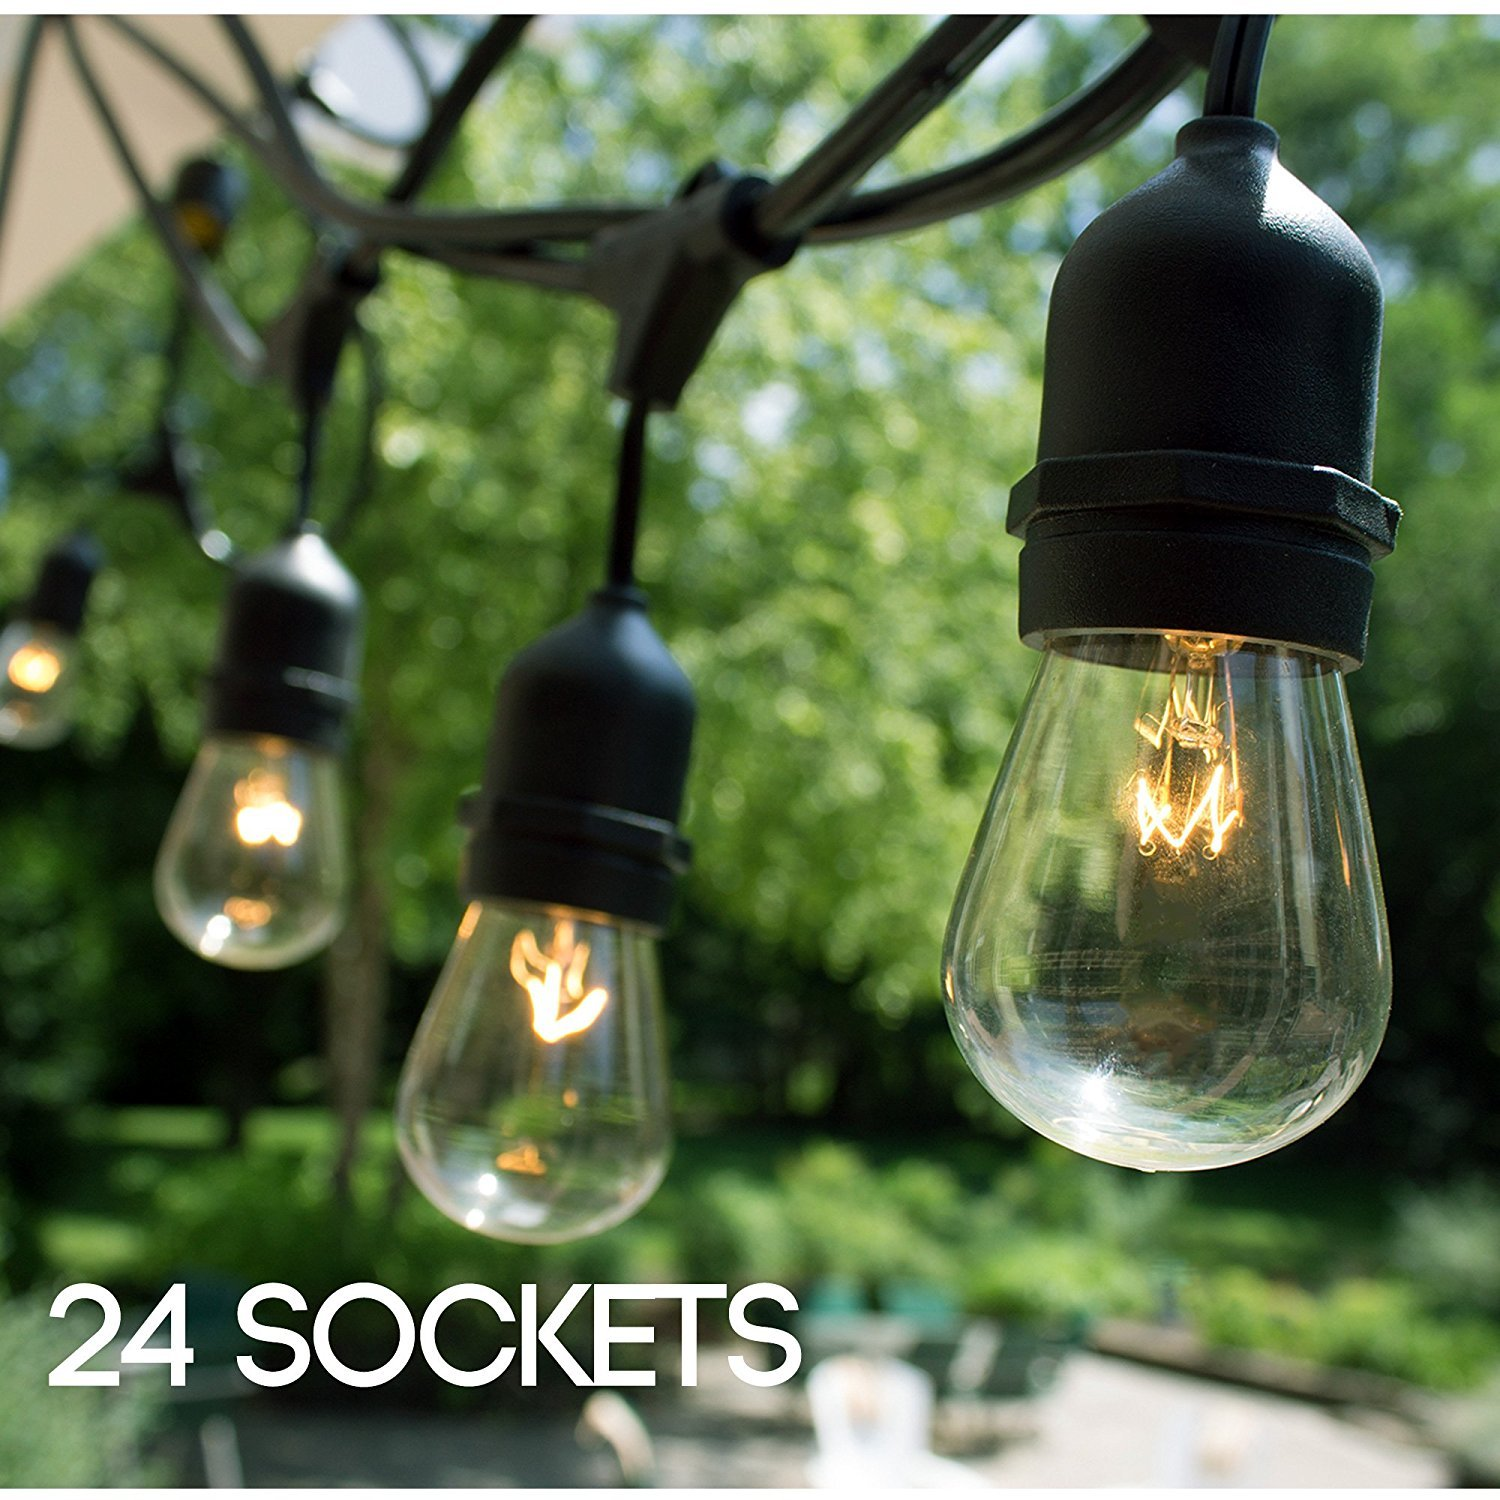 Fulton Illuminations S14 24 Bulbs Outdoor String Lights with 6 Extra Bulbs and 13 Ft Extension Cord, 48 Feet - Commercial Weatherproof Patio String Lights by Fulton Illuminations (Image #4)